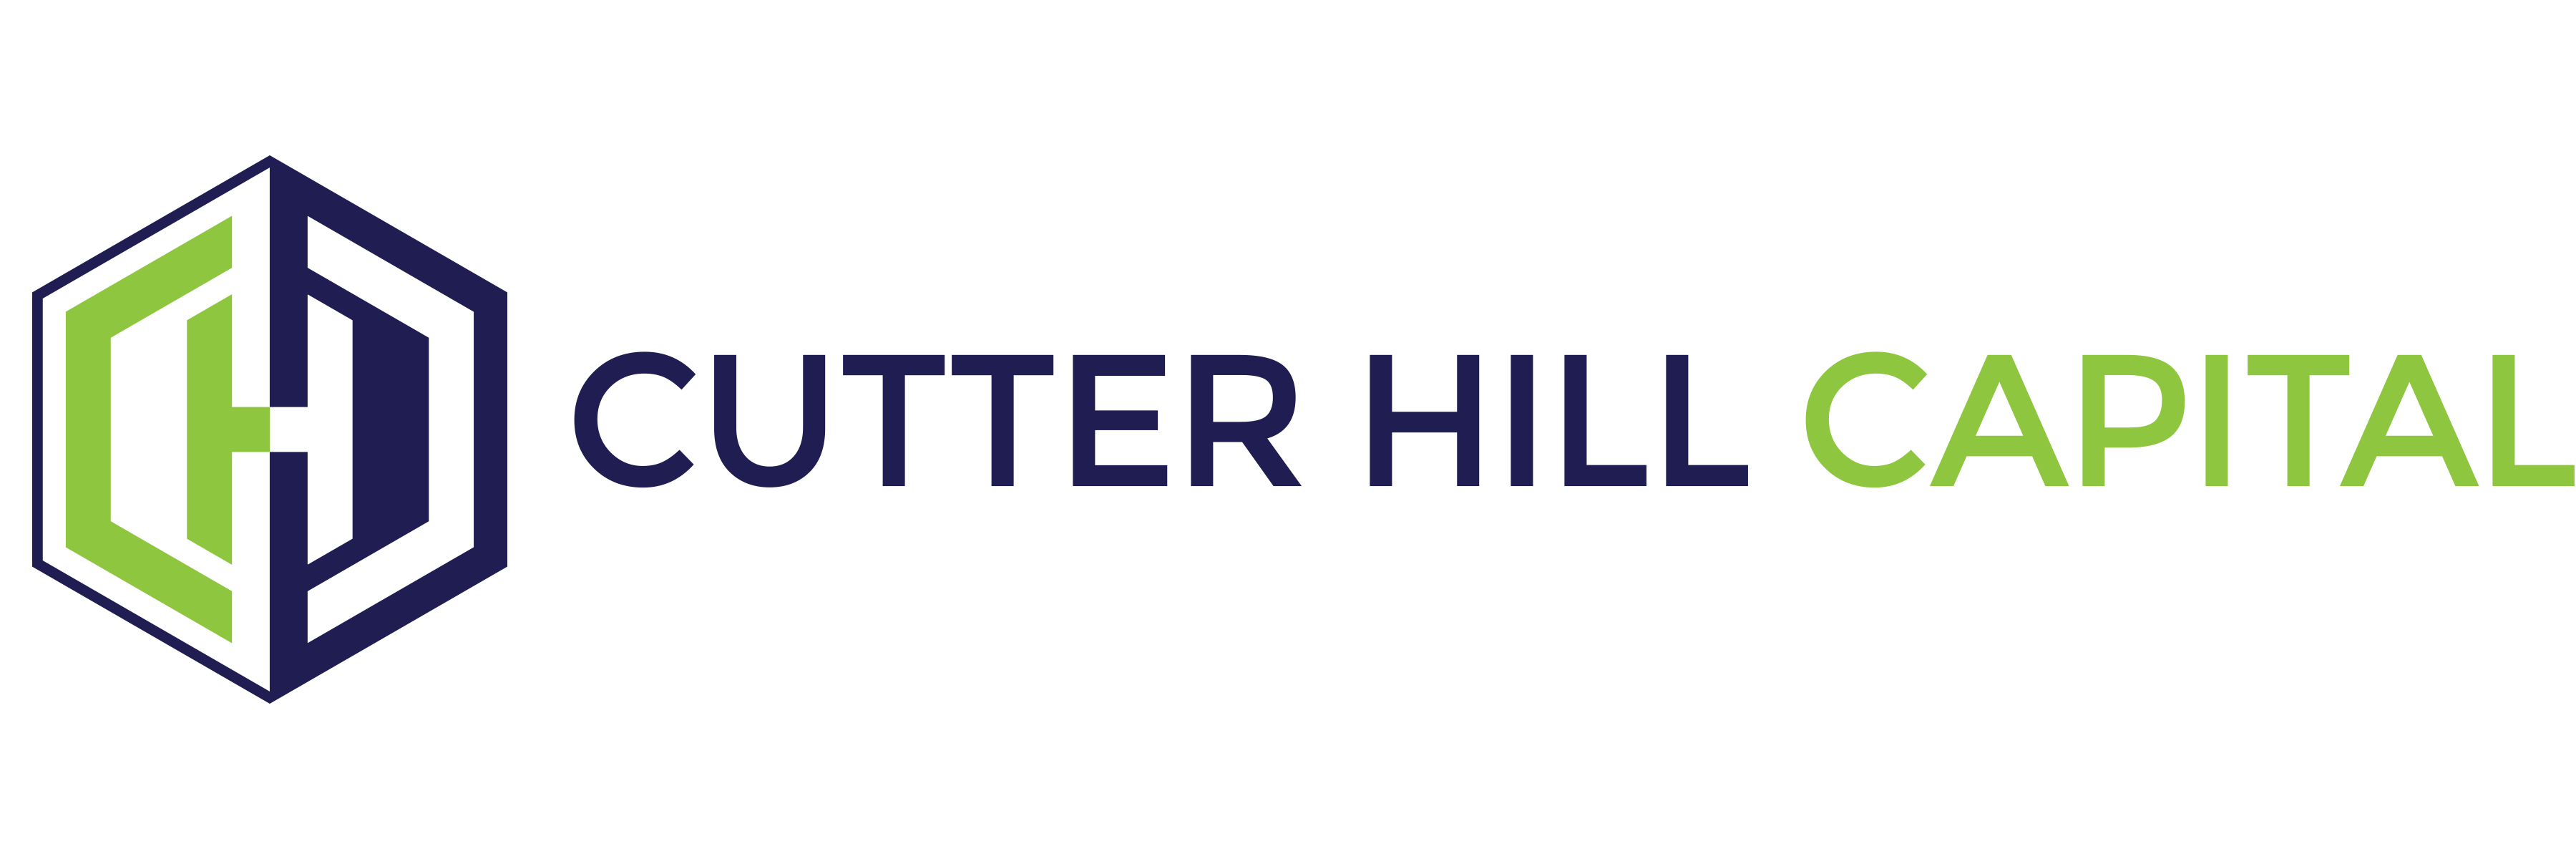 Cutter Hill Capital